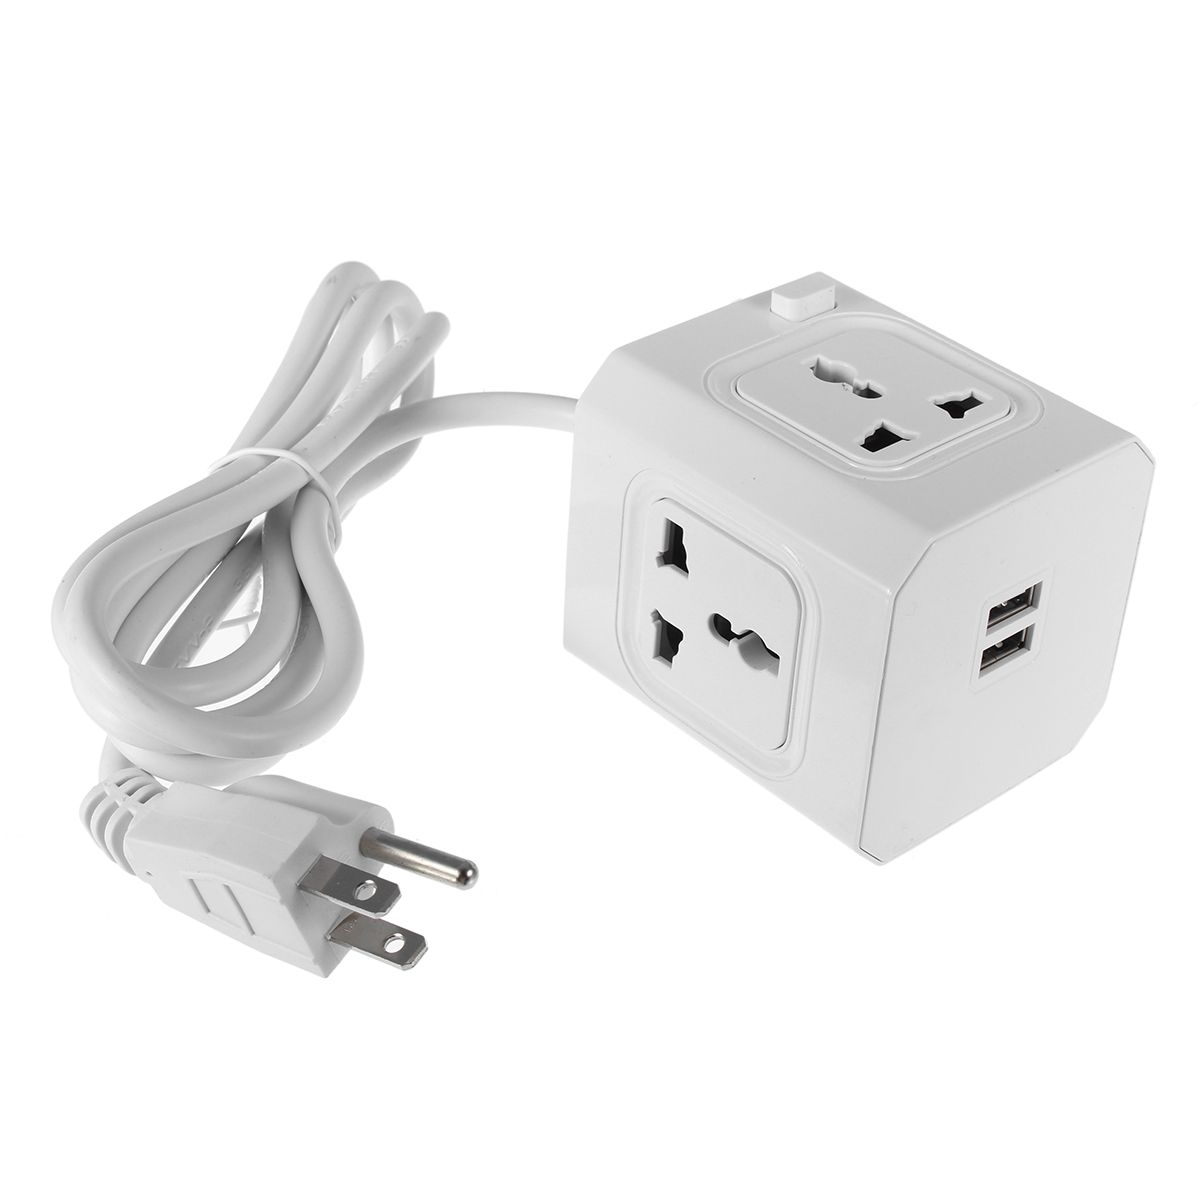 5v 2 1a Magic Powercube Wall Socket With 2 Usb Ports 4 Outlets Plug Extension Cable Cord Extension Cable Sockets Usb